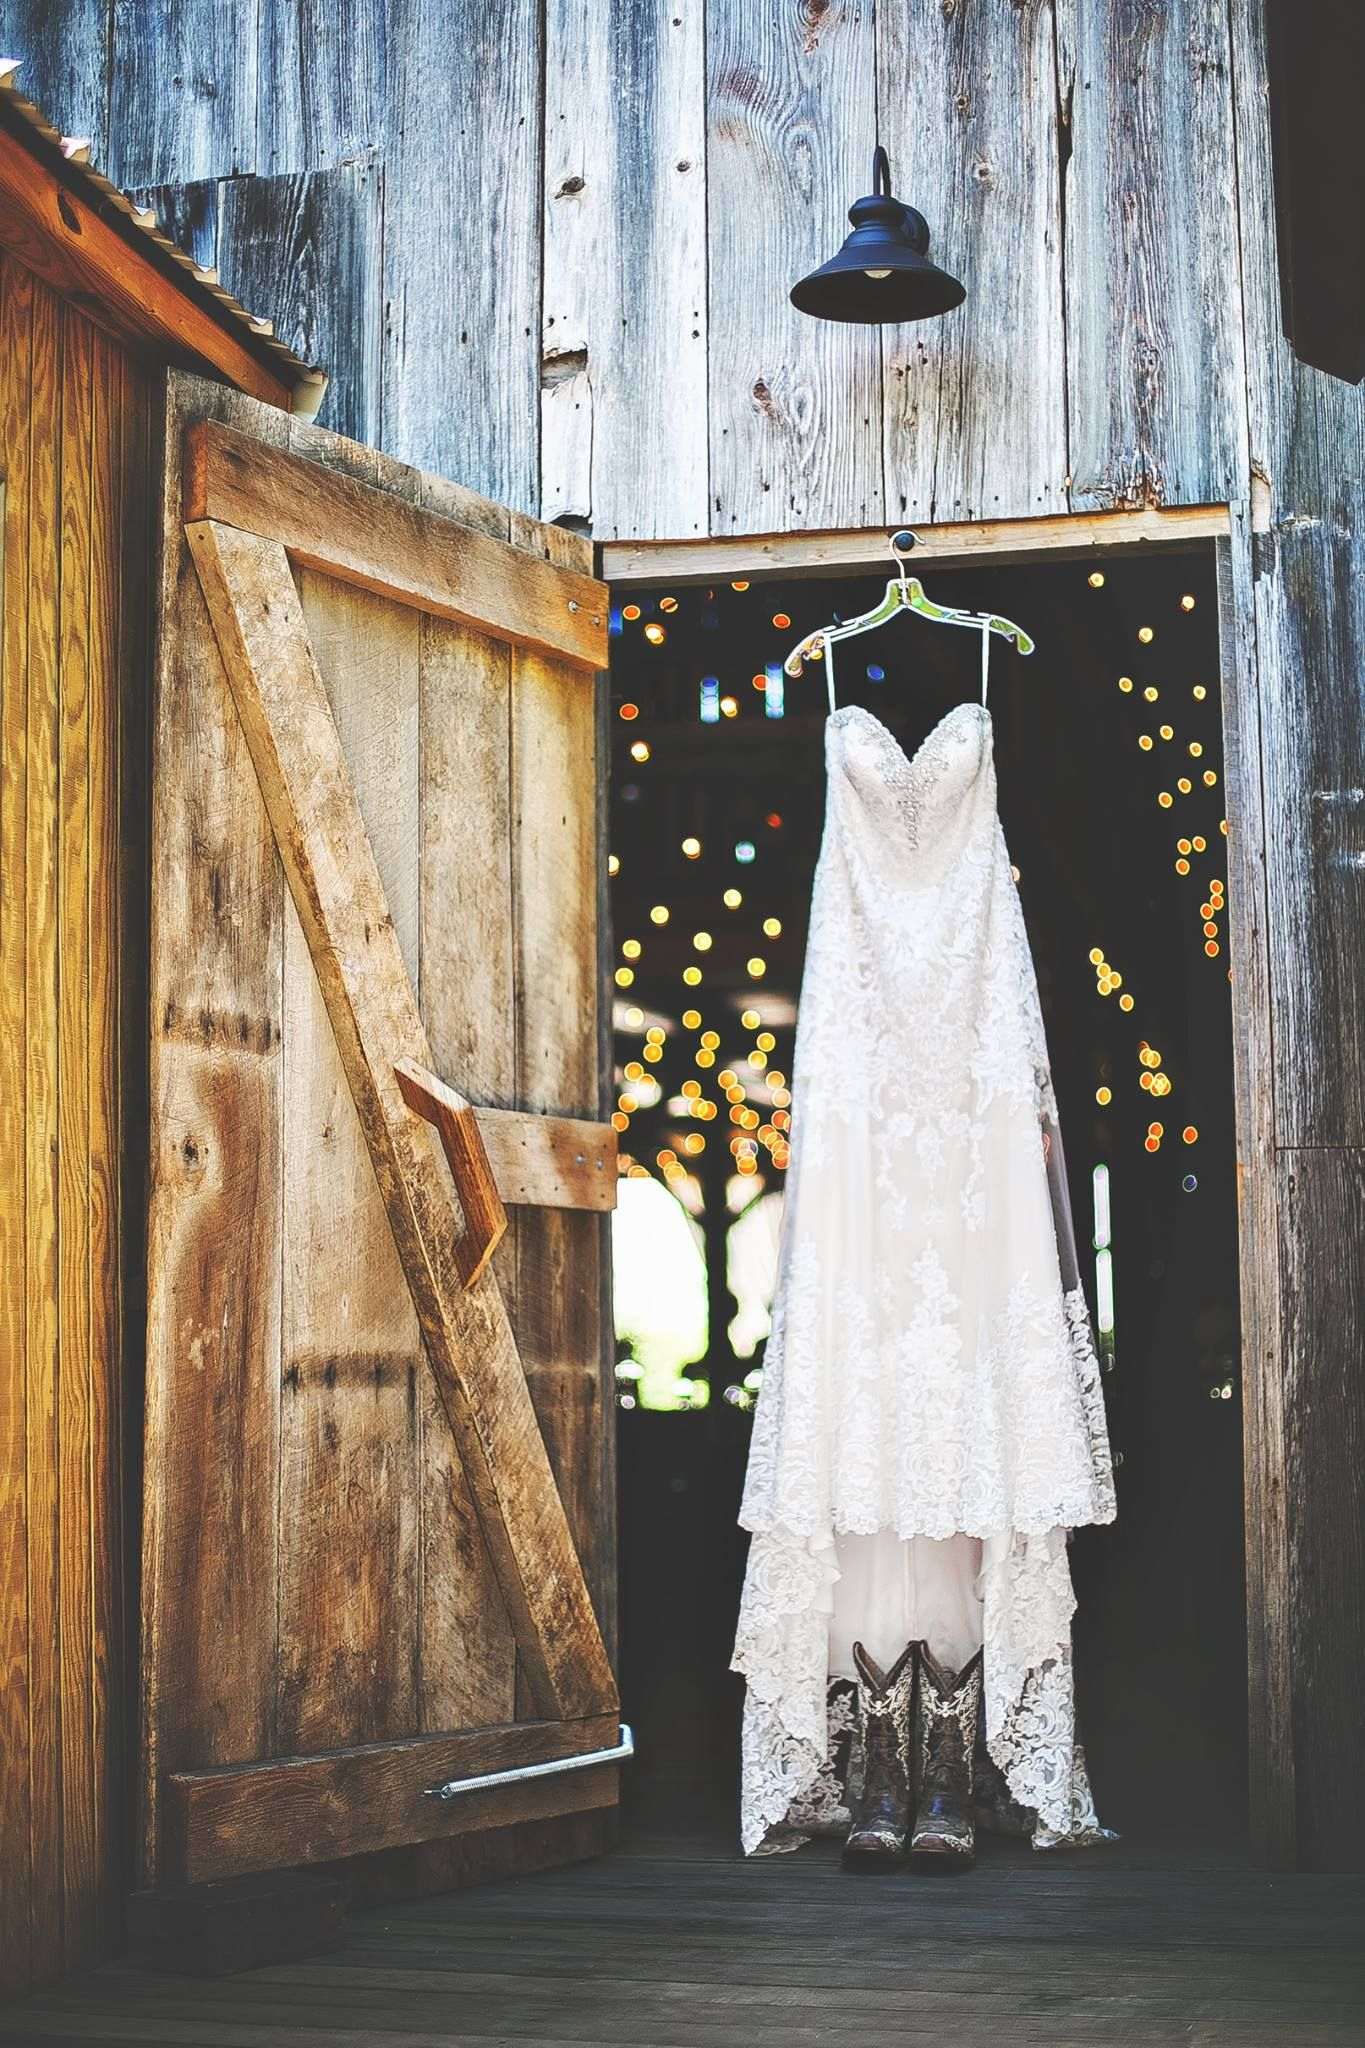 Rustic lace wedding dress  HERITAGERANCHMOCOM Alicia Marieus Photography rustic wedding lace